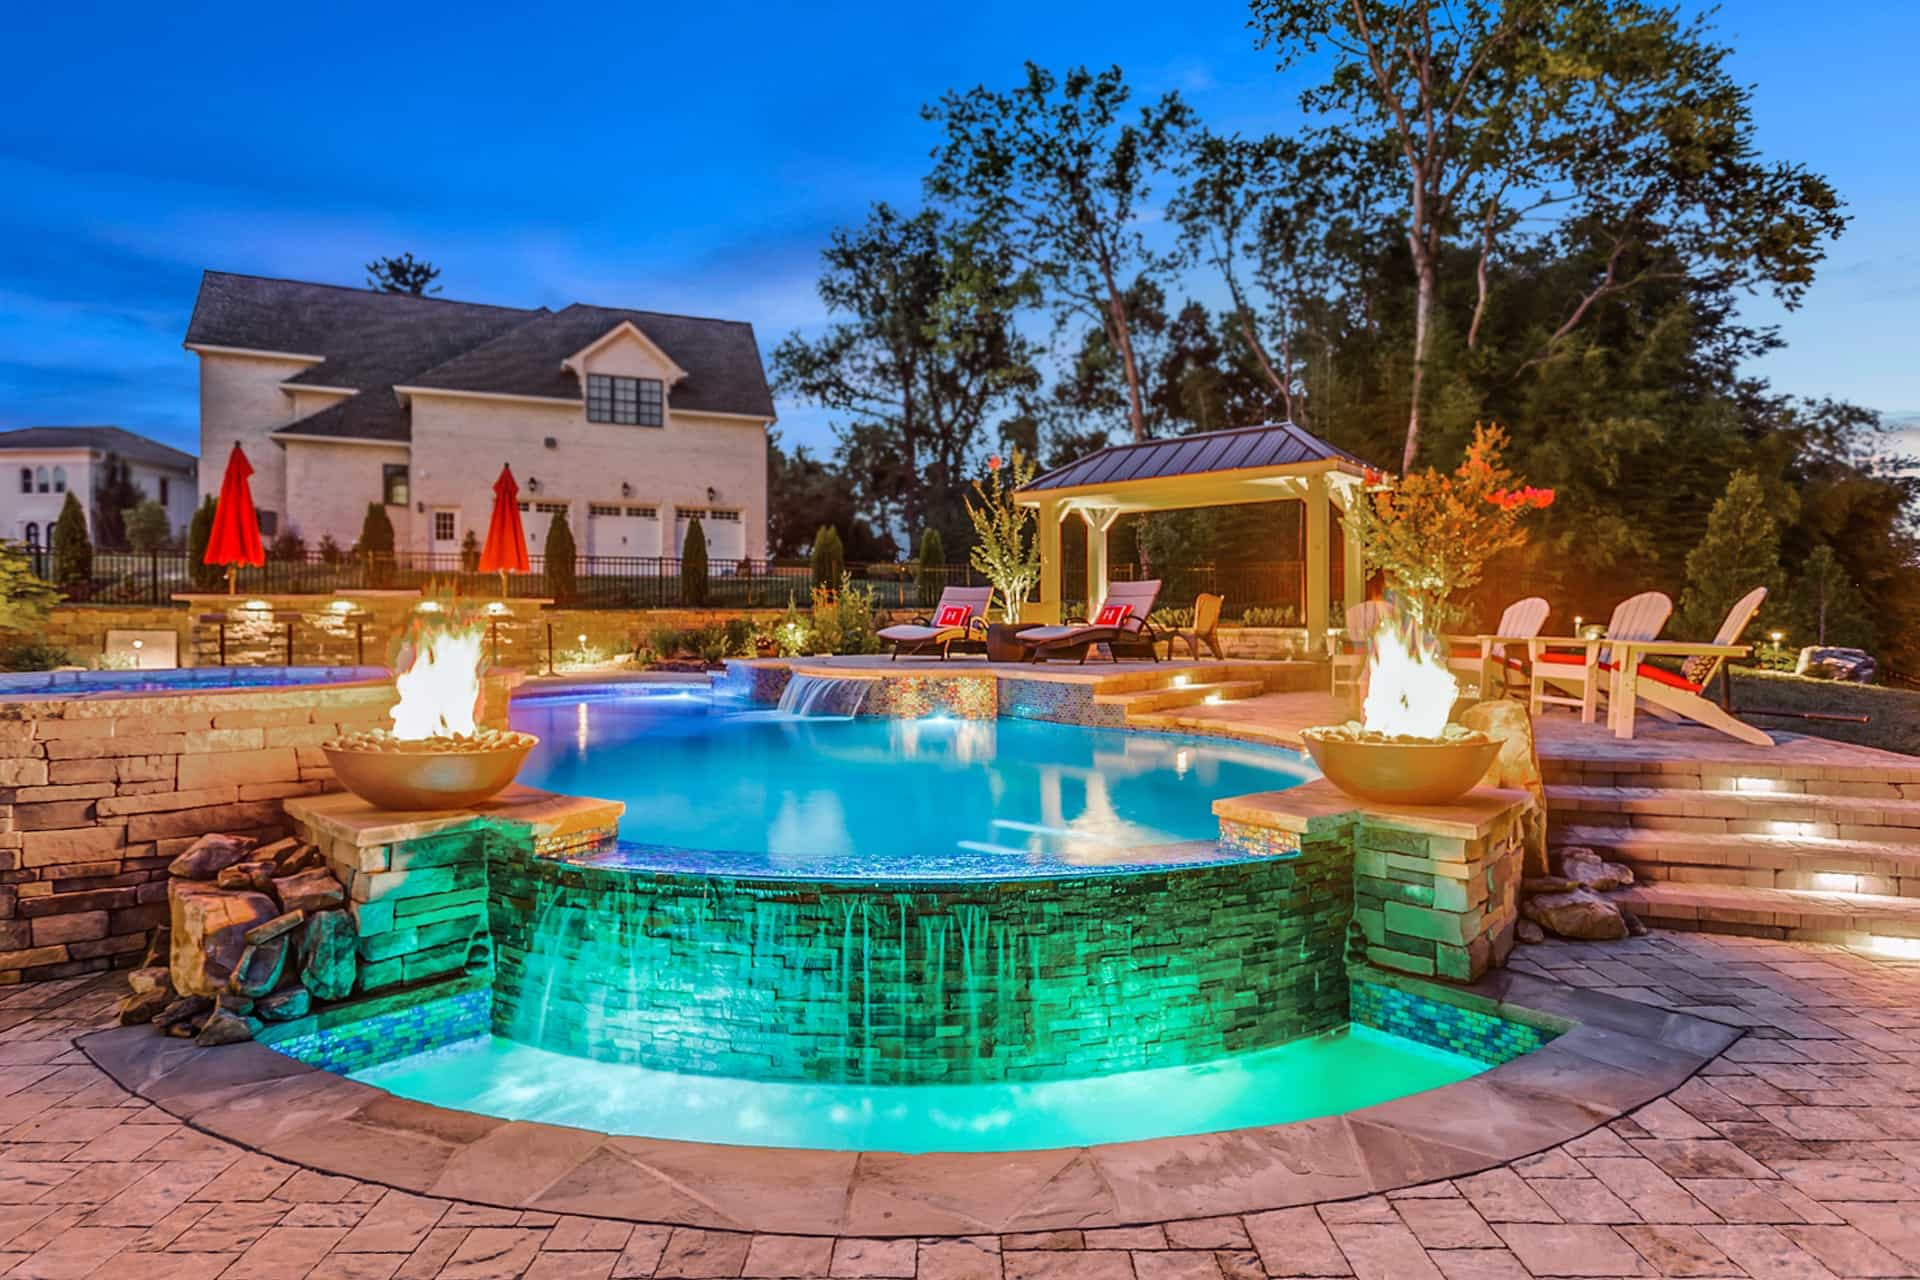 Nashville custom pool builder